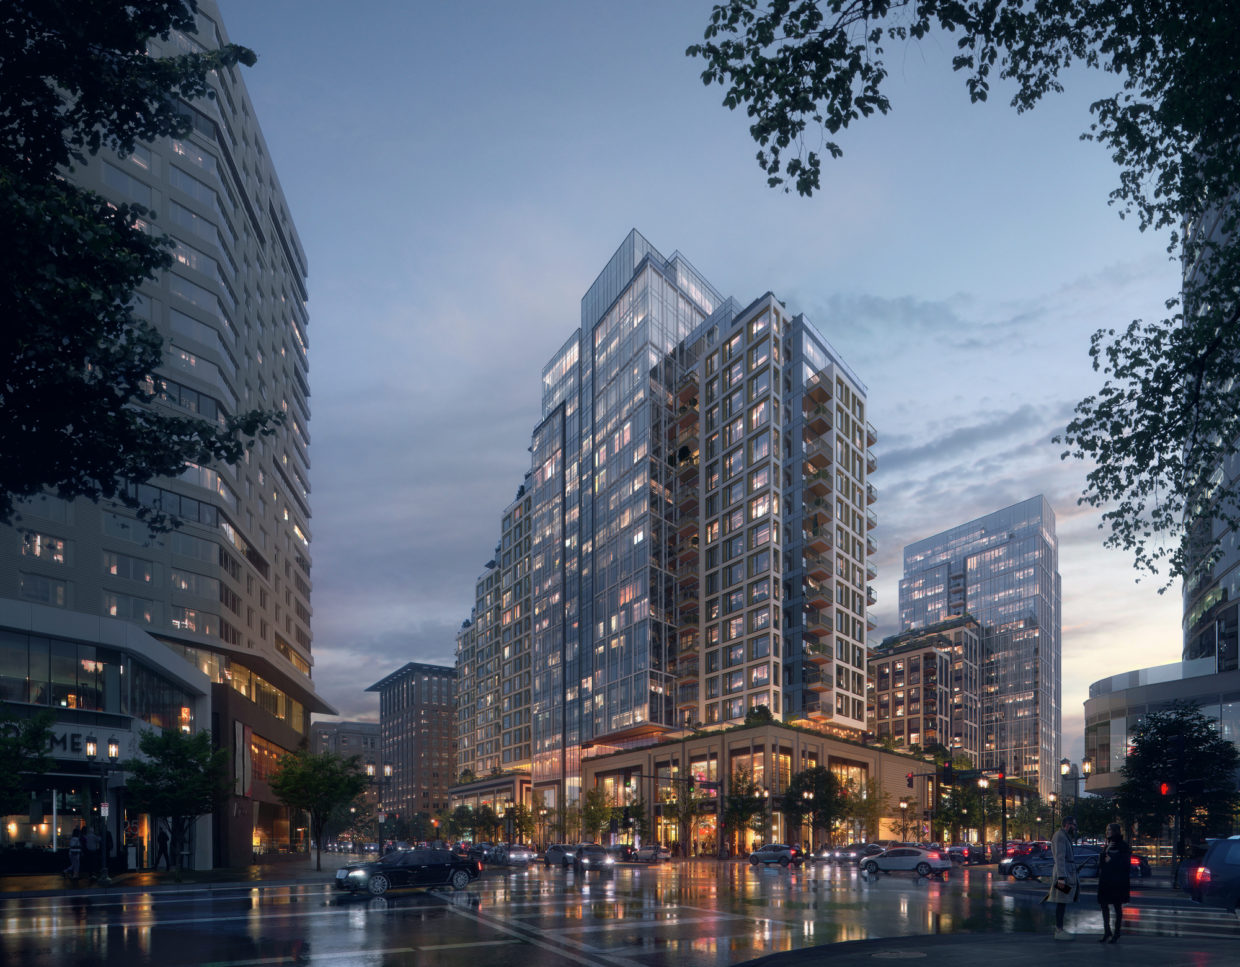 ARCHDAILY: KPF Advances Growth of Boston Seaport with Towered Mixed-Use Building